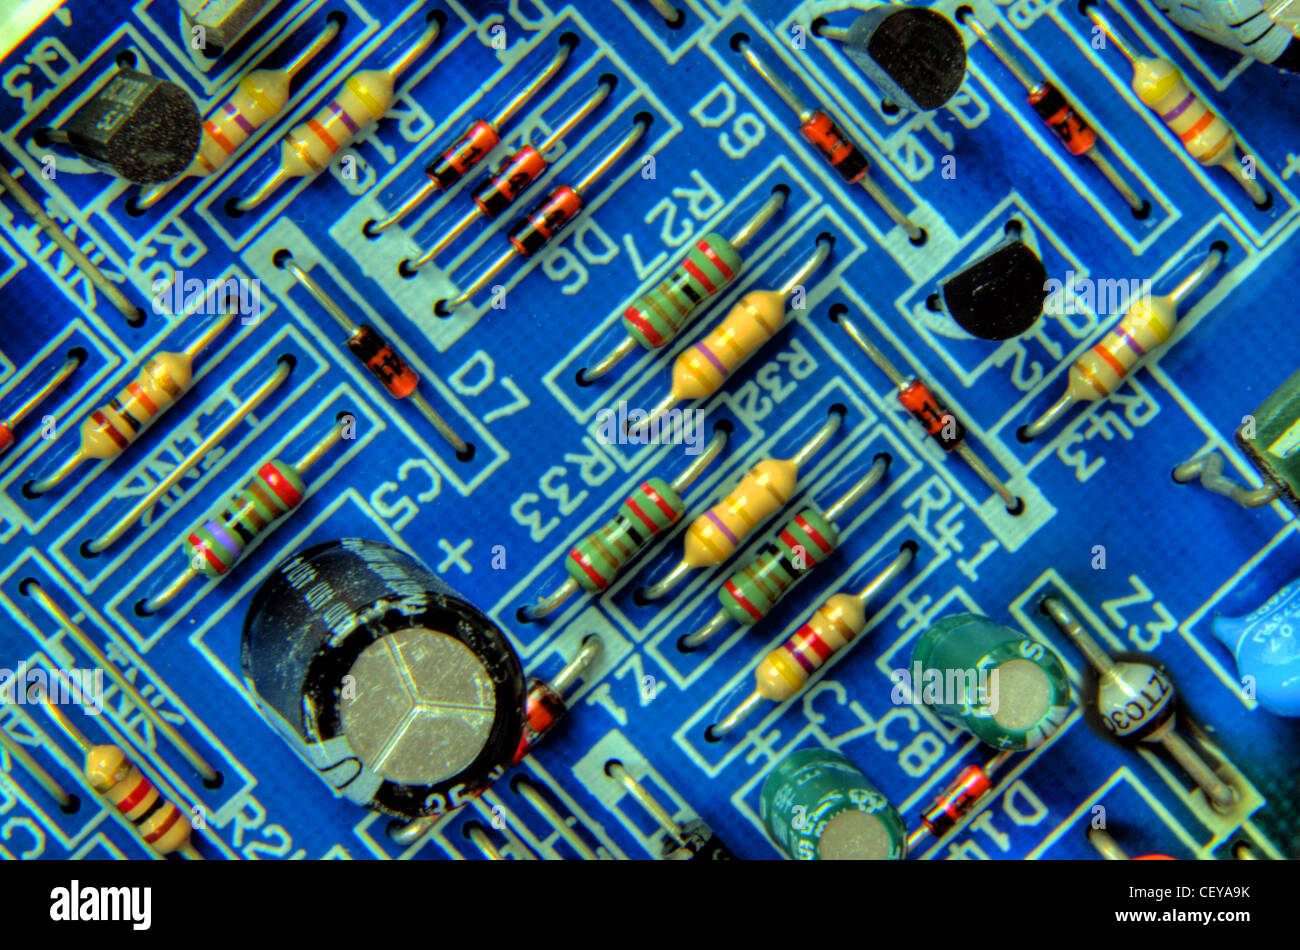 Electronics,Electronic,Electric,Blue,Printed,Circuit,Board,with,resistors,capacitor and transistors,from,Bosch,Worcester,central,heating,boiler,components,component,technology,high,tech,hitech,hi-tech,gotonysmith,integrated,PCB,tech,printed circuit board,A,printed,circuit,board,or PCB,is,used,to,mechanically,support,and,electrically,connect,electronic,components,using,conductive,pathways,tracks,or,signal,traces,etched,from,copper,sheets,laminated,onto,a,non-conductive,substrate,gotonysmith,Buy Pictures of,Buy Images Of